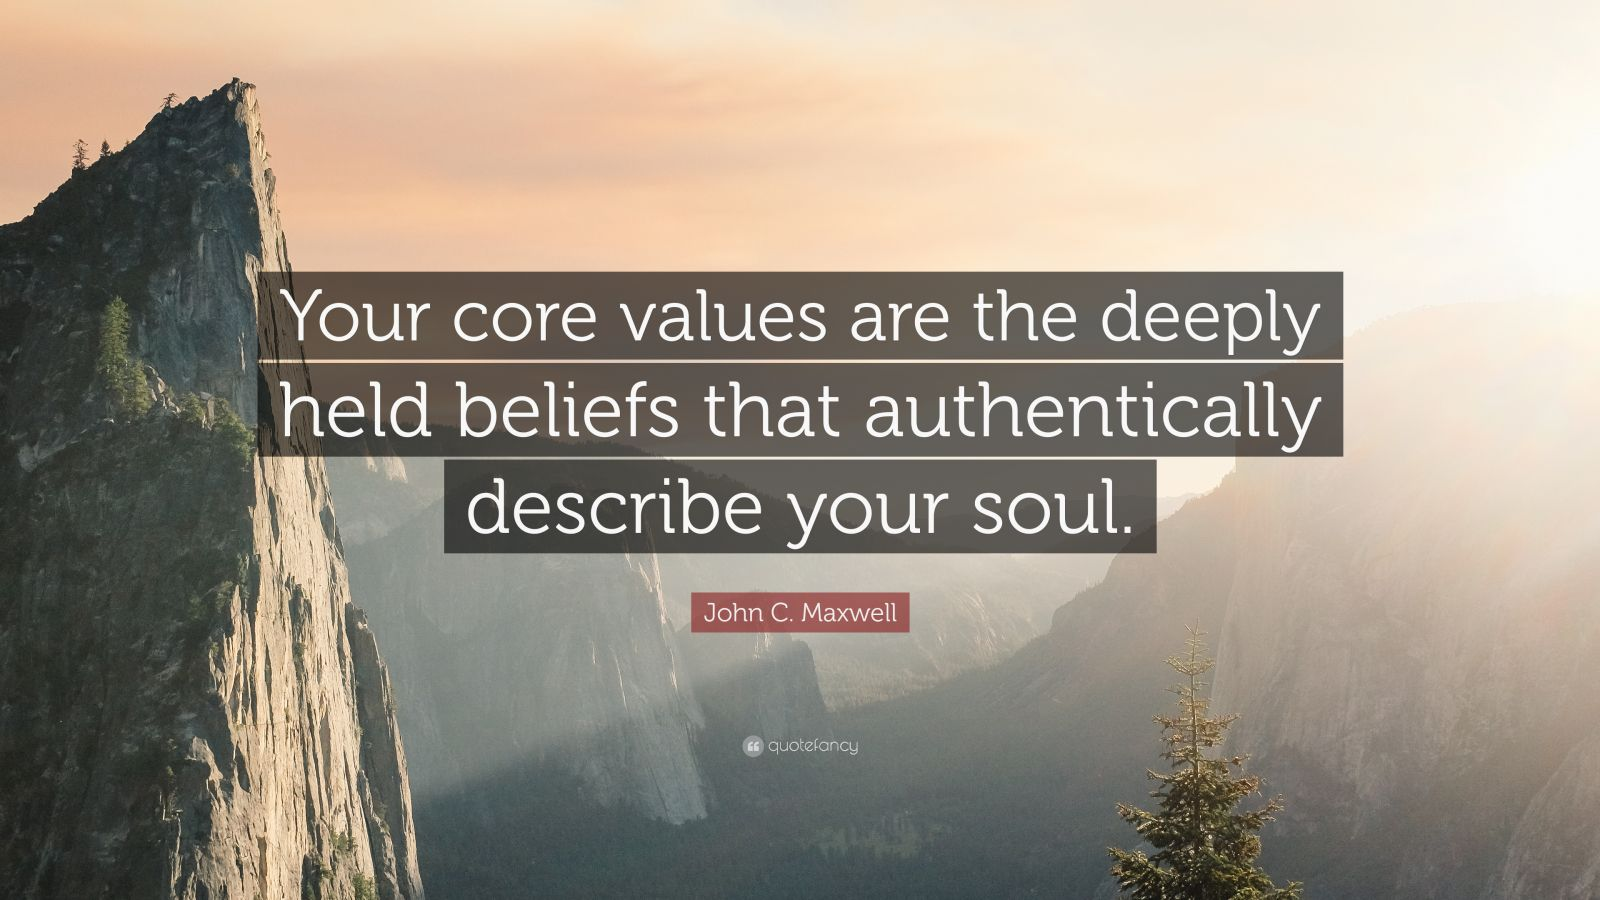 john c  maxwell quote   u201cyour core values are the deeply